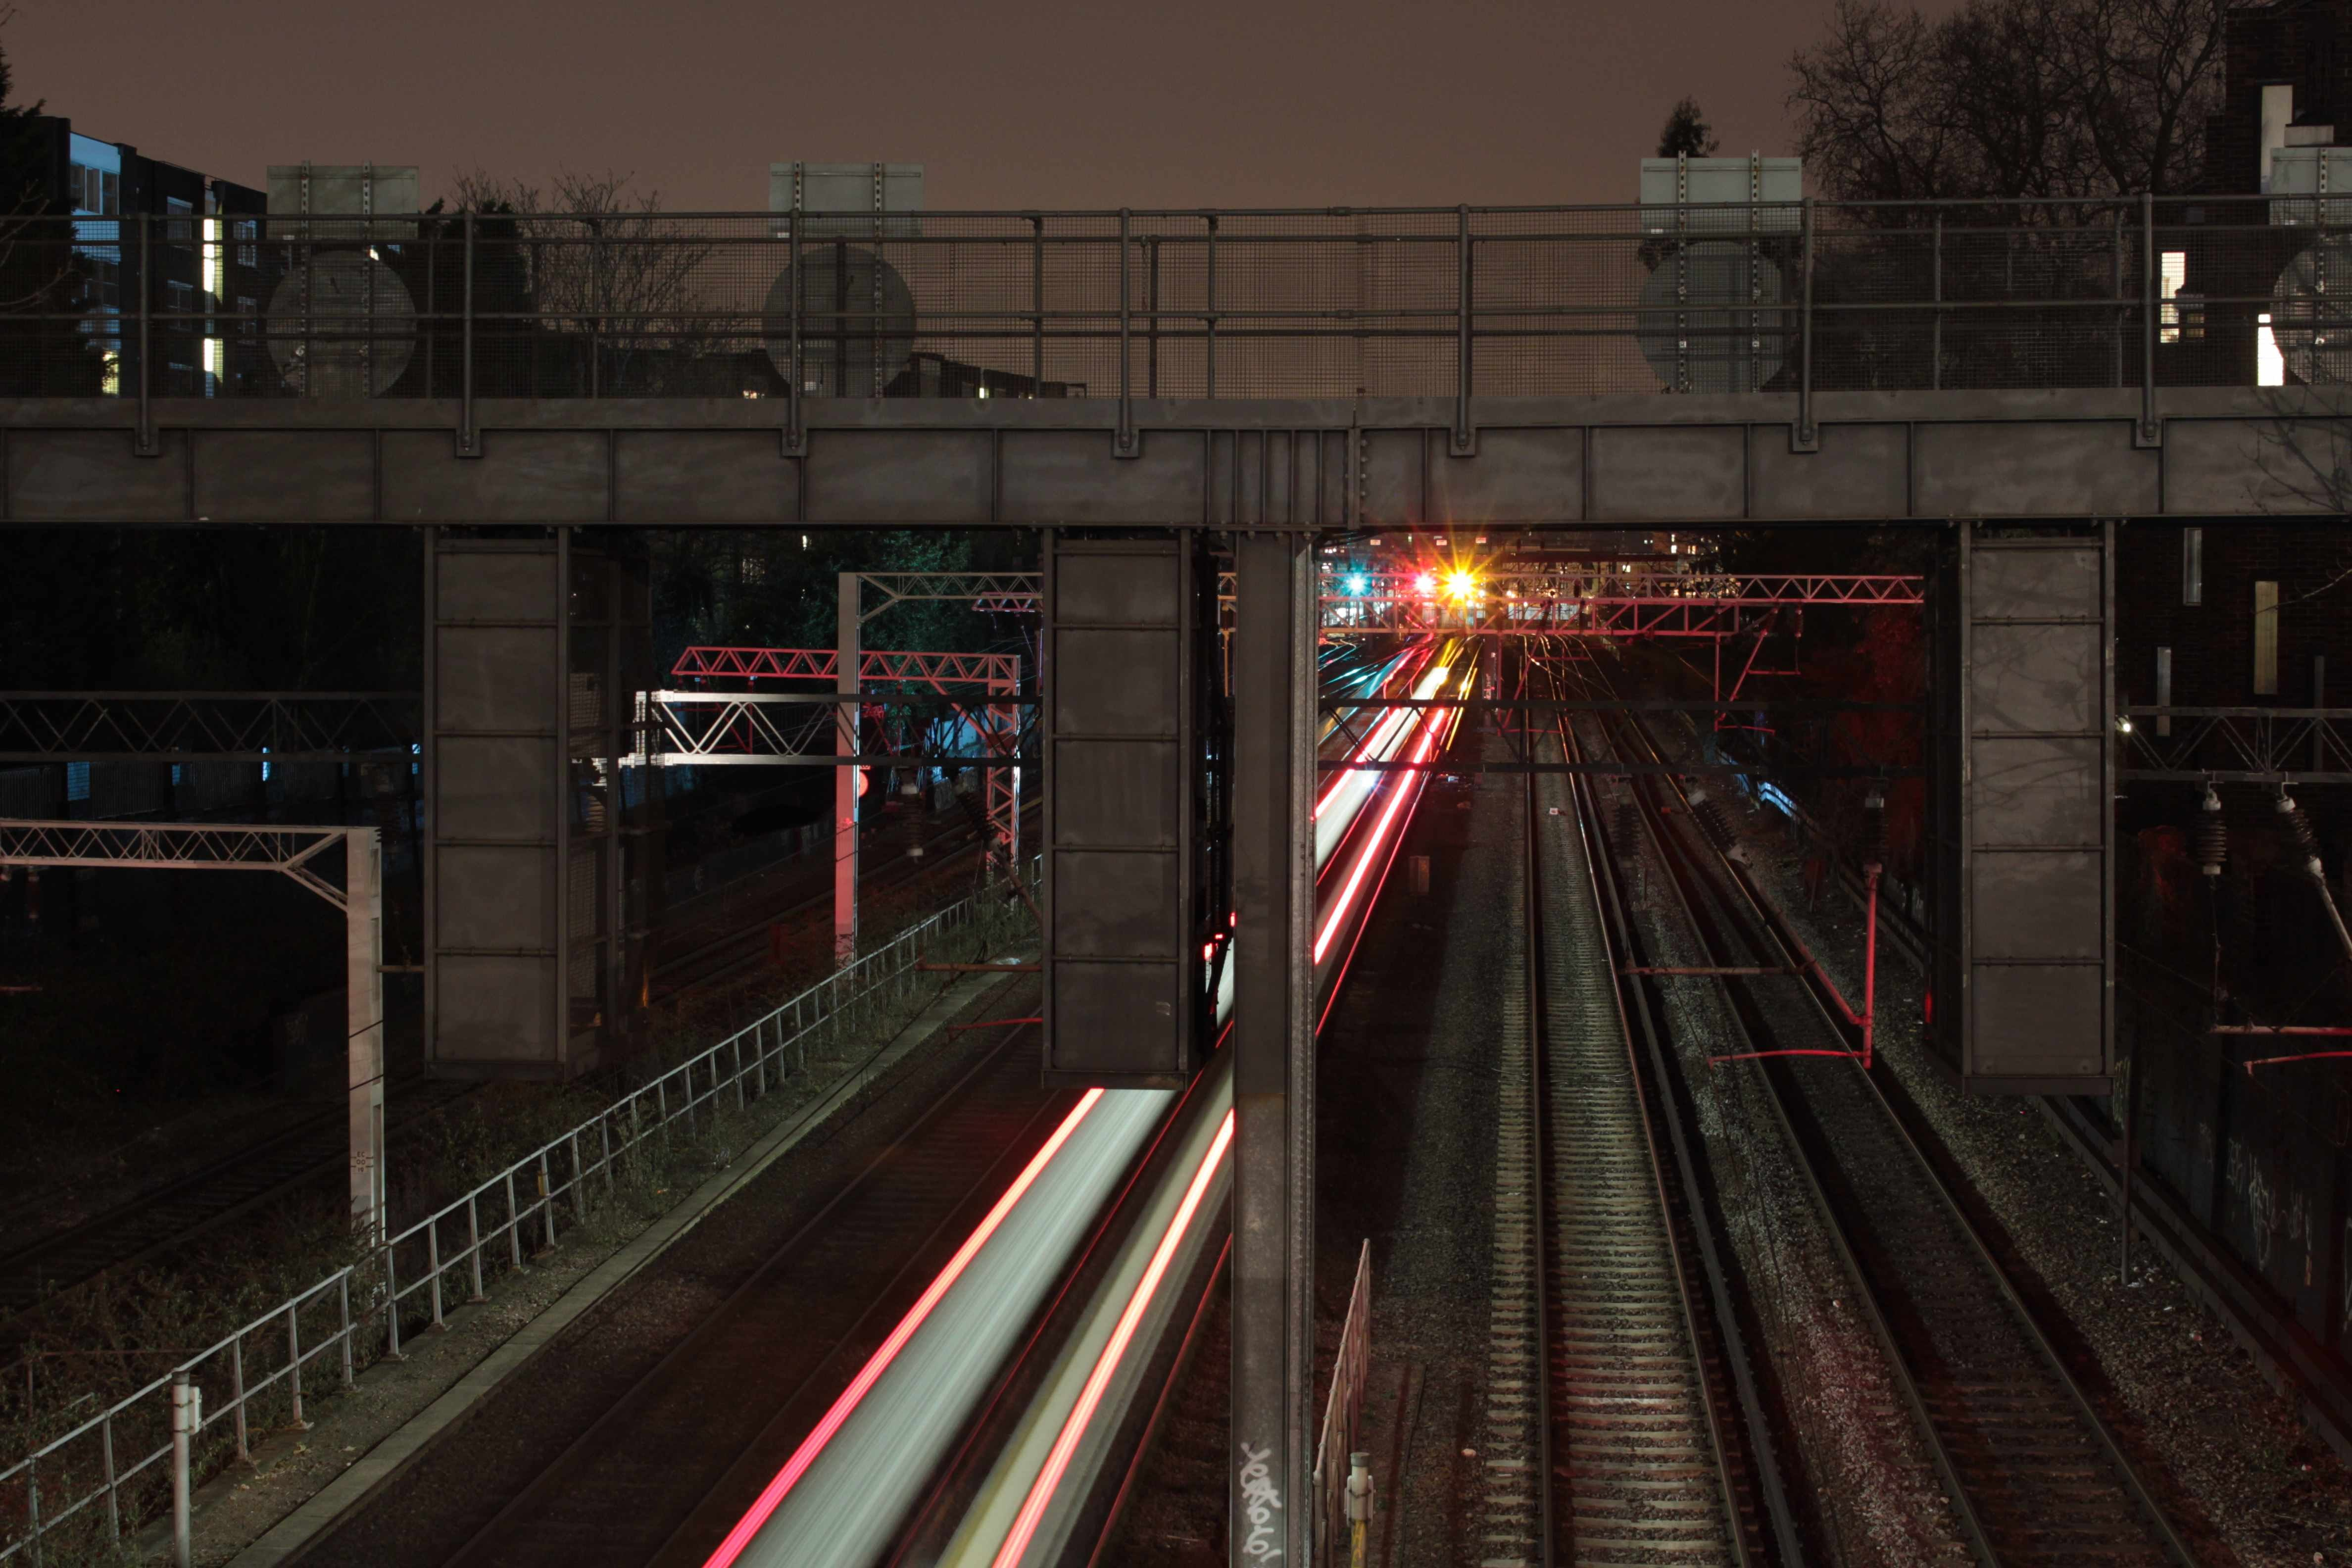 A long-exposure shot with light trails on an urban railroad track under an overpass at night